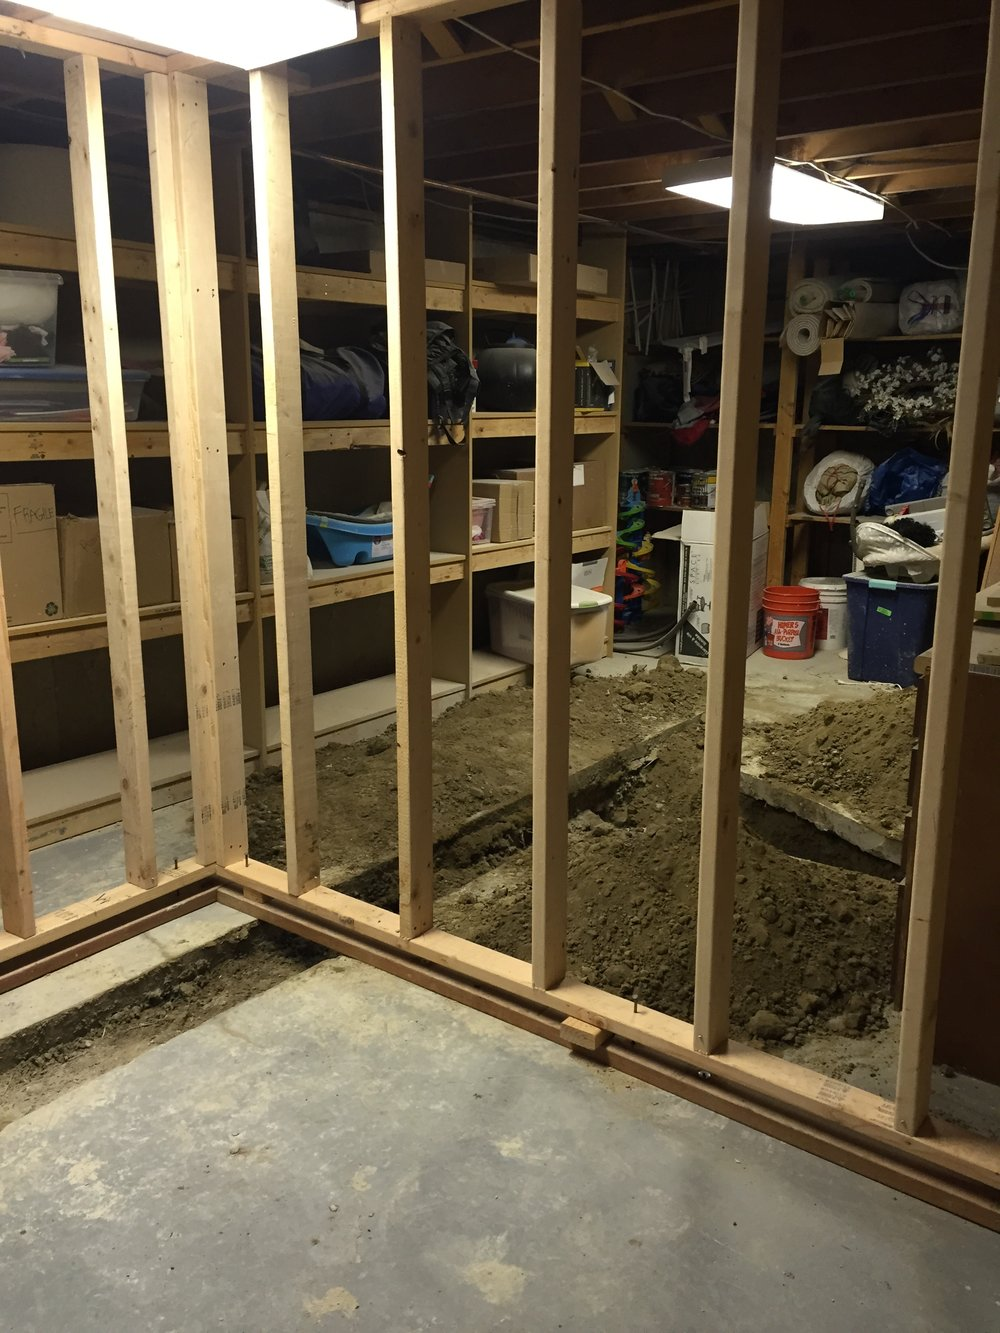 Framing and plumbing for the bathroom in the basement